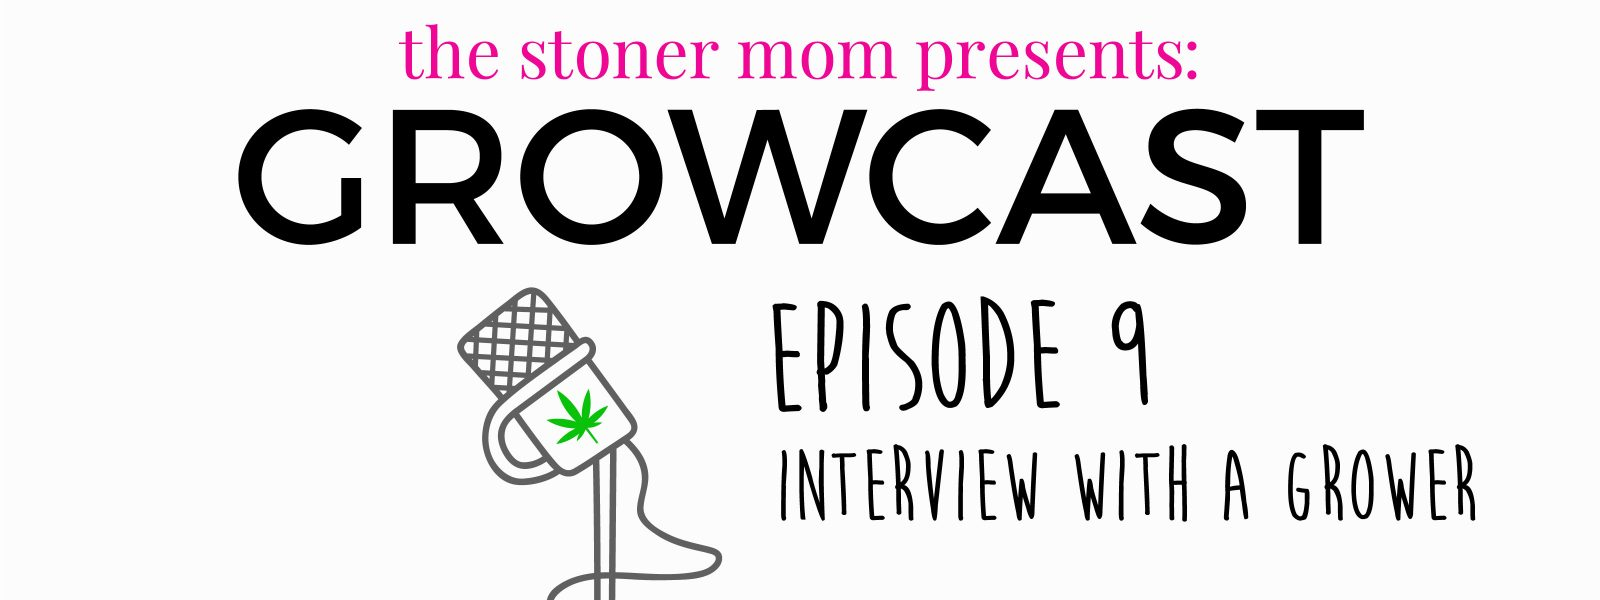 GrowCast Episode 9: Interview with a Home Cannabis Grower